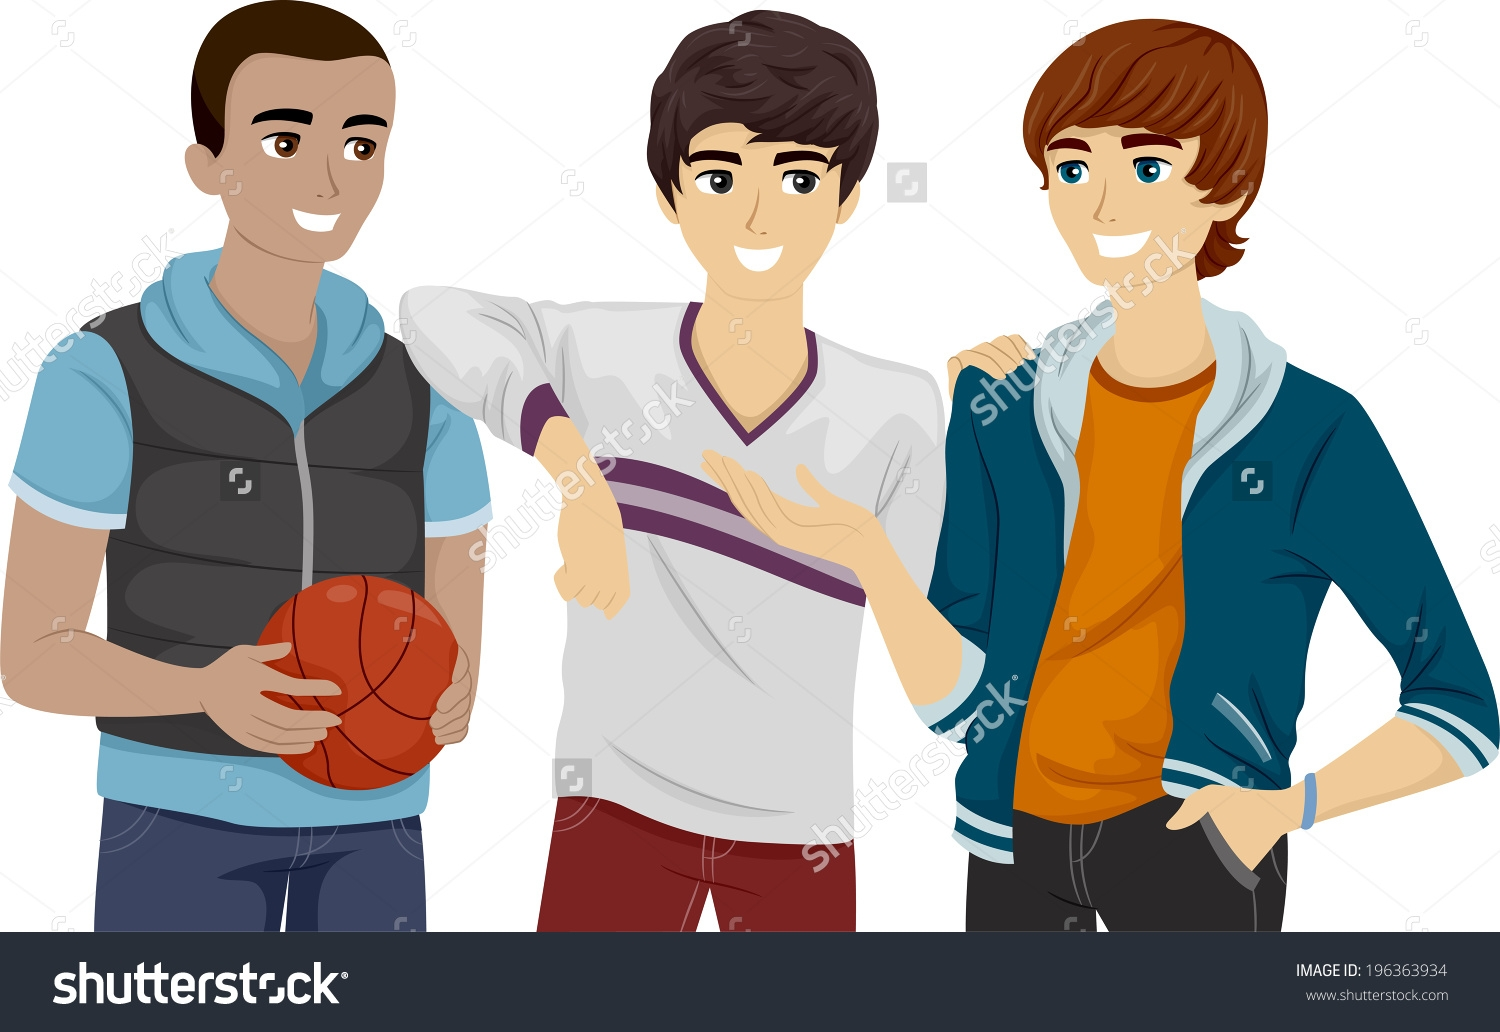 Group Of Friends Hanging Out Clipart.